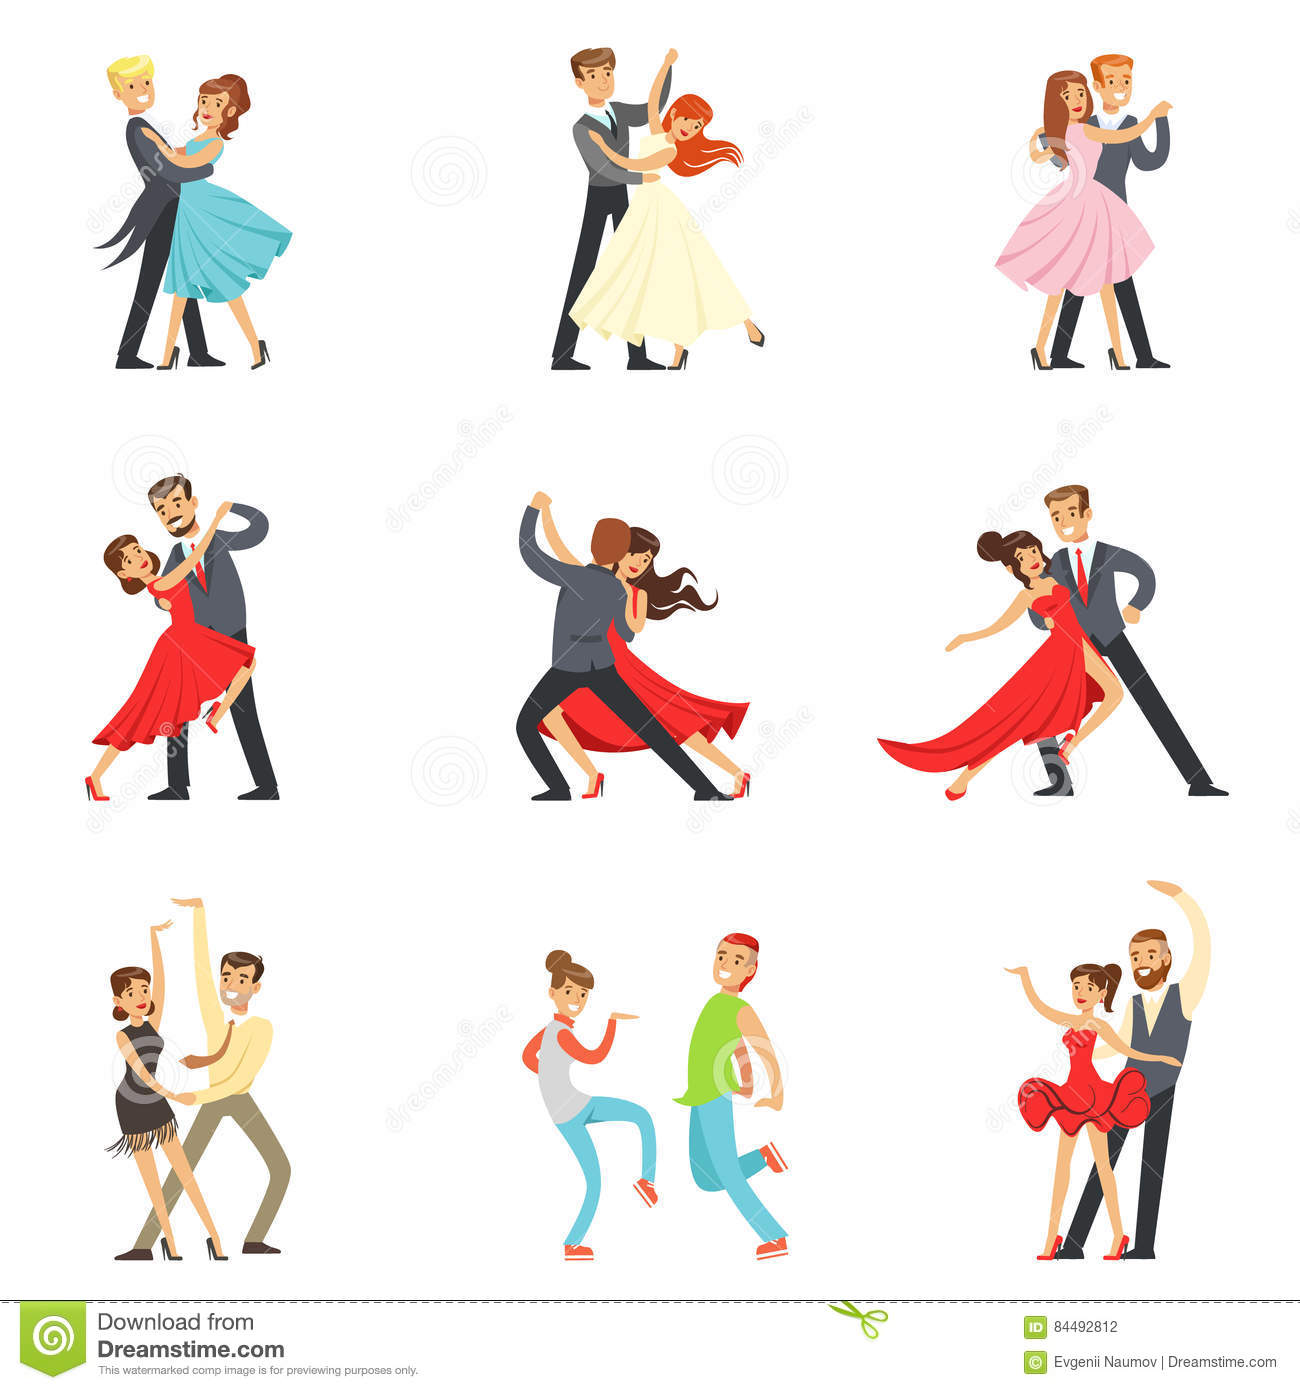 Waltz cartoons illustrations vector stock images 1160, cute love coloring pages